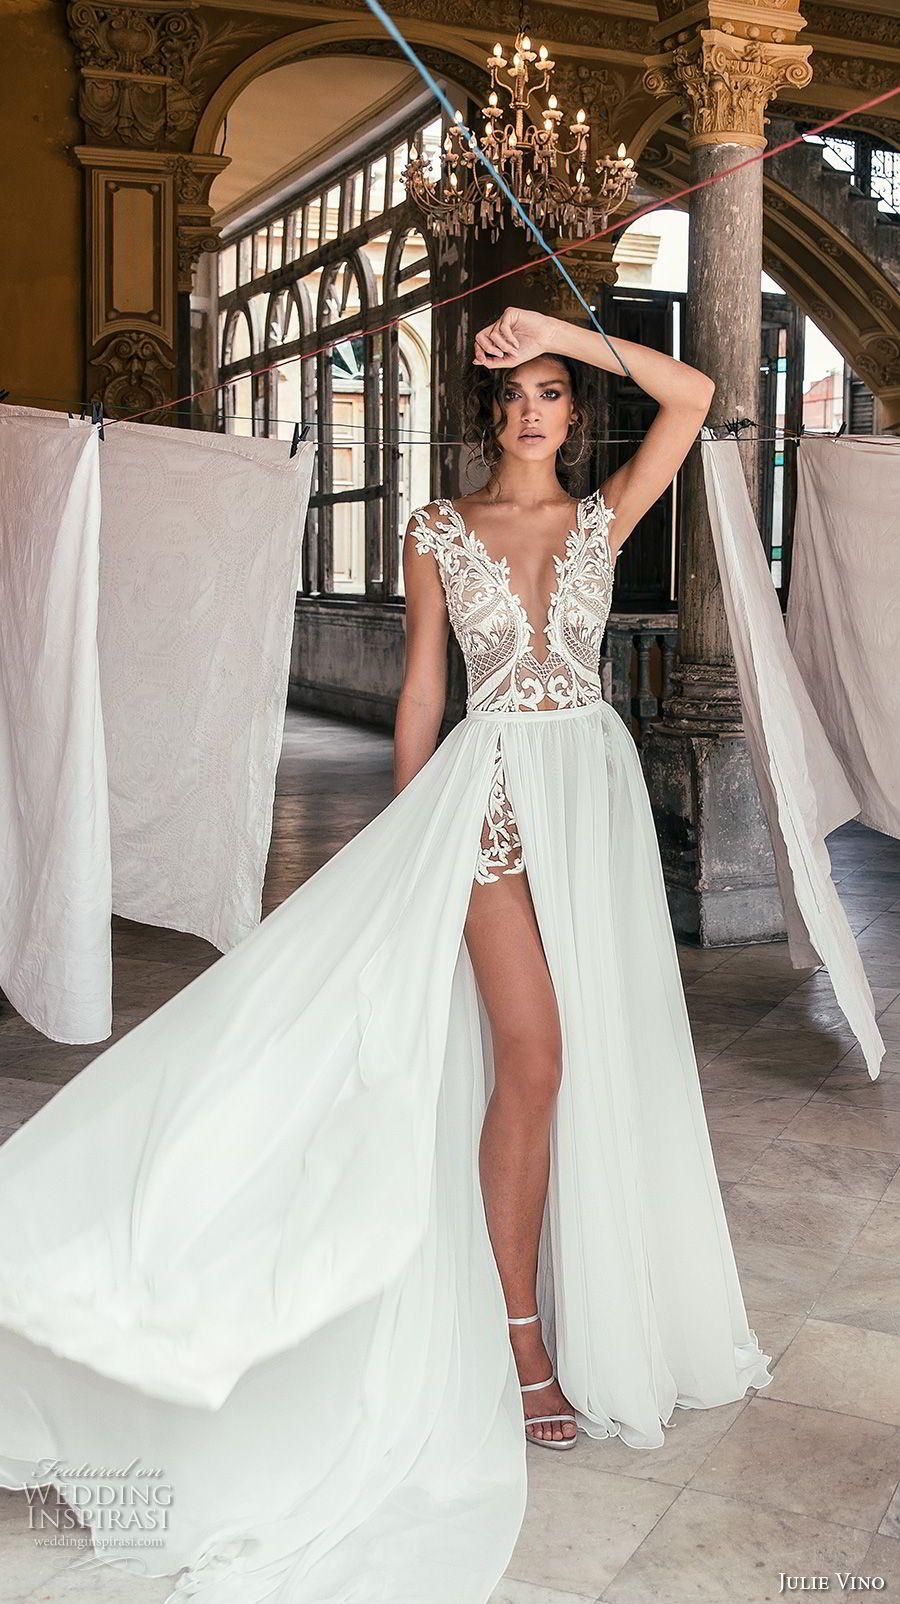 Julie vino fall wedding dresses u uchavanaud bridal collection